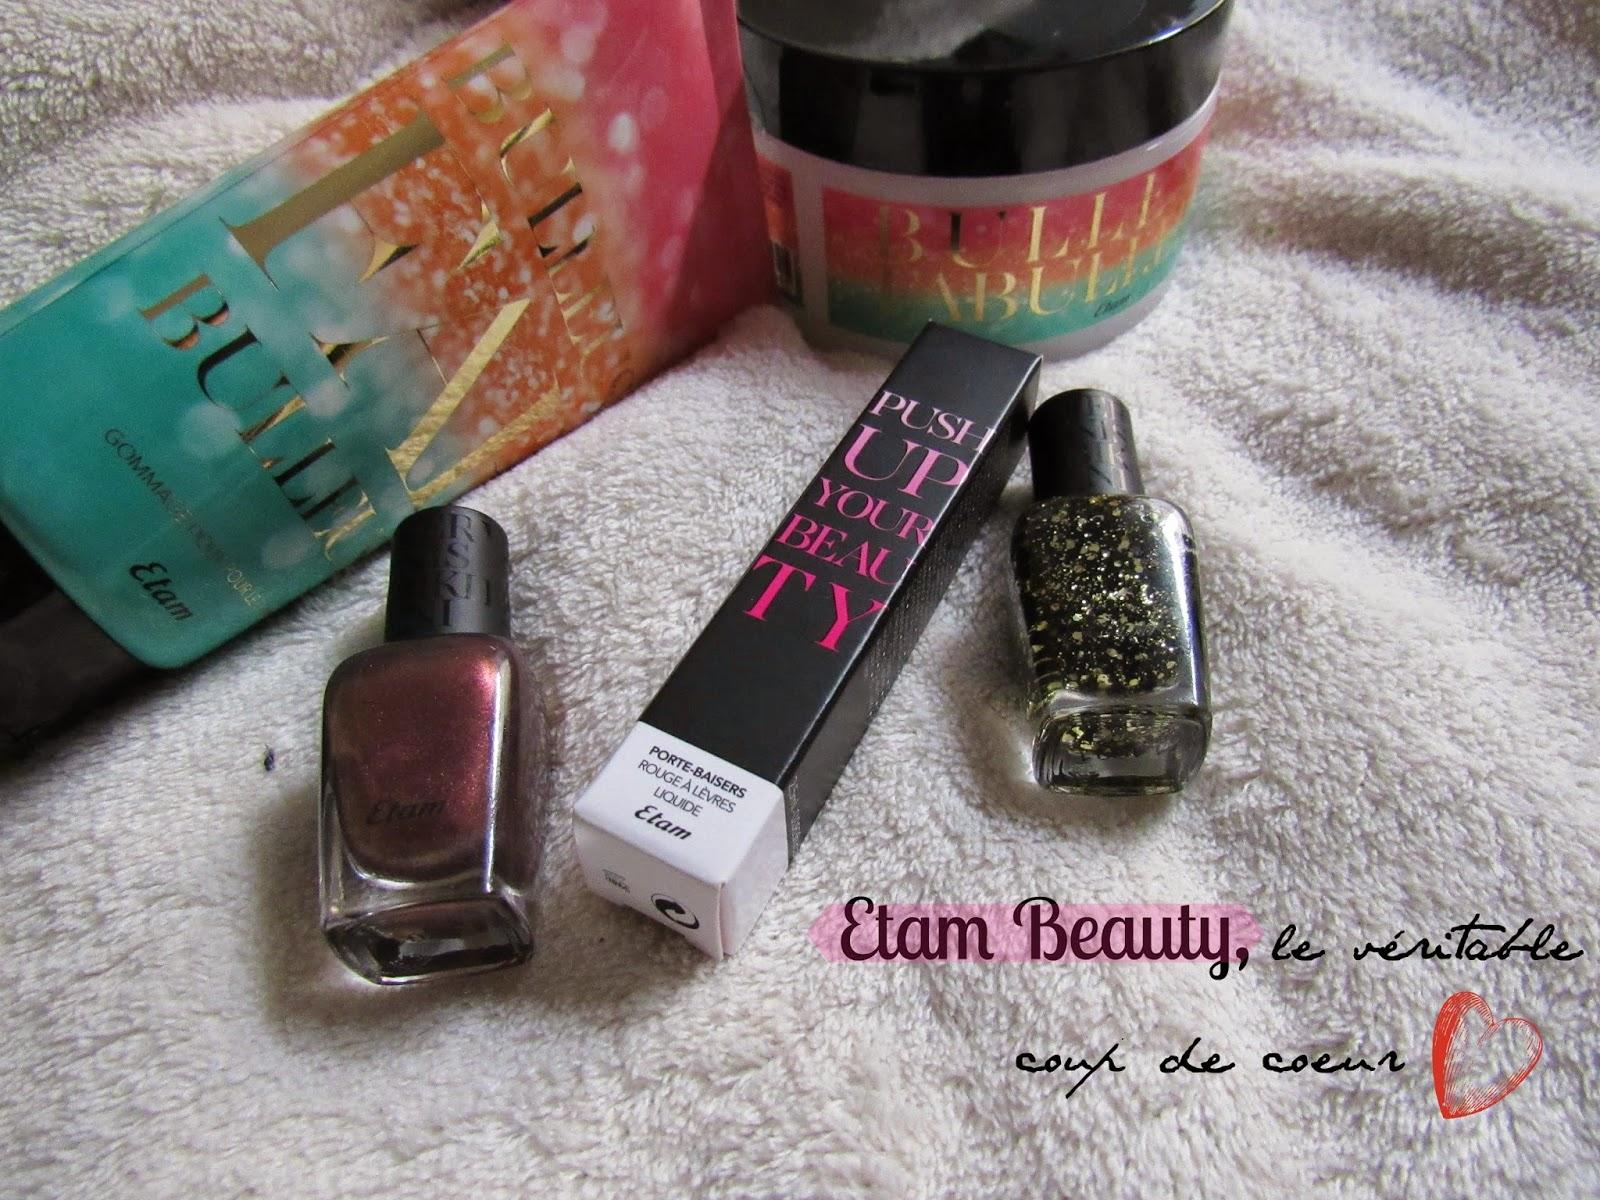 Push Your Beauty avec Etam !